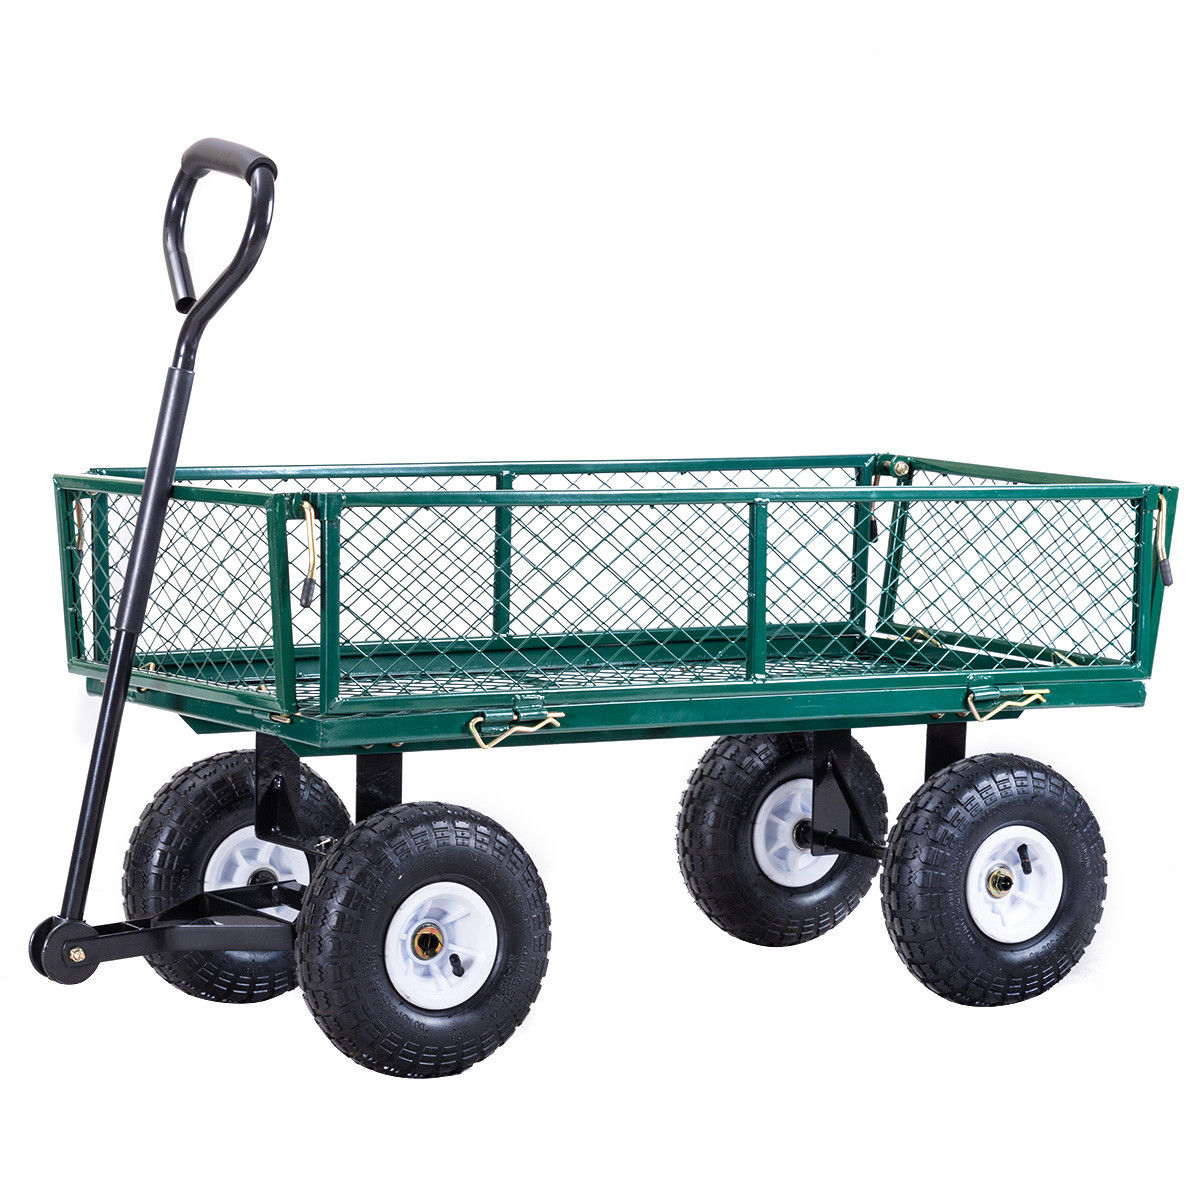 GHP 330-Lbs Capacity Green Steel Frame Garden Utility Cart Wagon with Rubber Wheels by